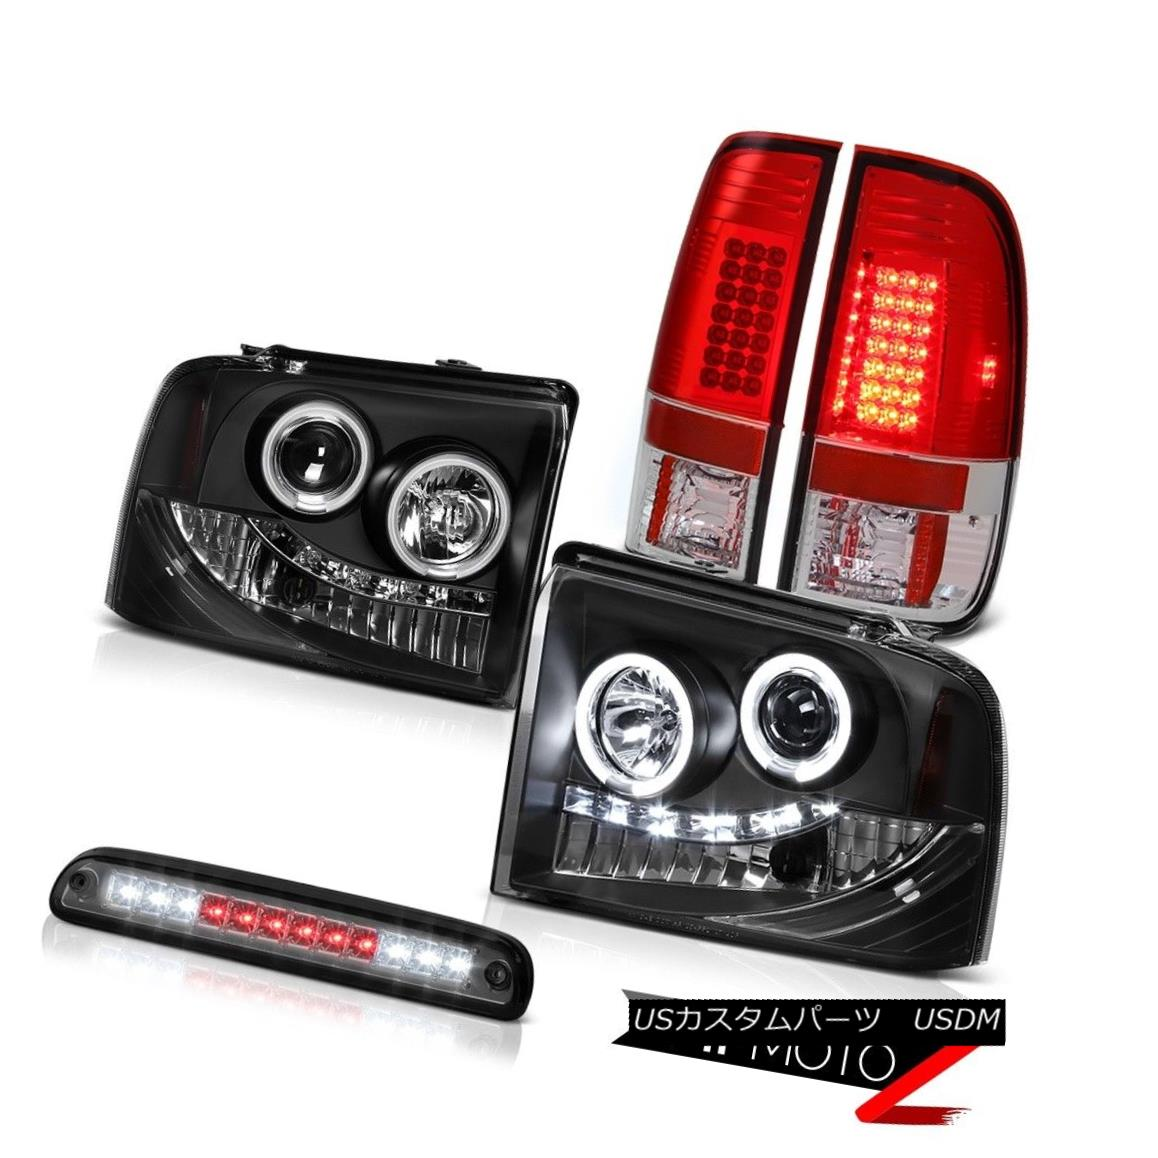 テールライト Devil's Eye CCFL Halo Headlights LED Taillights Roof Stop Tinted 05-07 F350 7.3L 悪魔の目CCFL HaloヘッドライトLED曇り屋根の止め線05-07 F350 7.3L